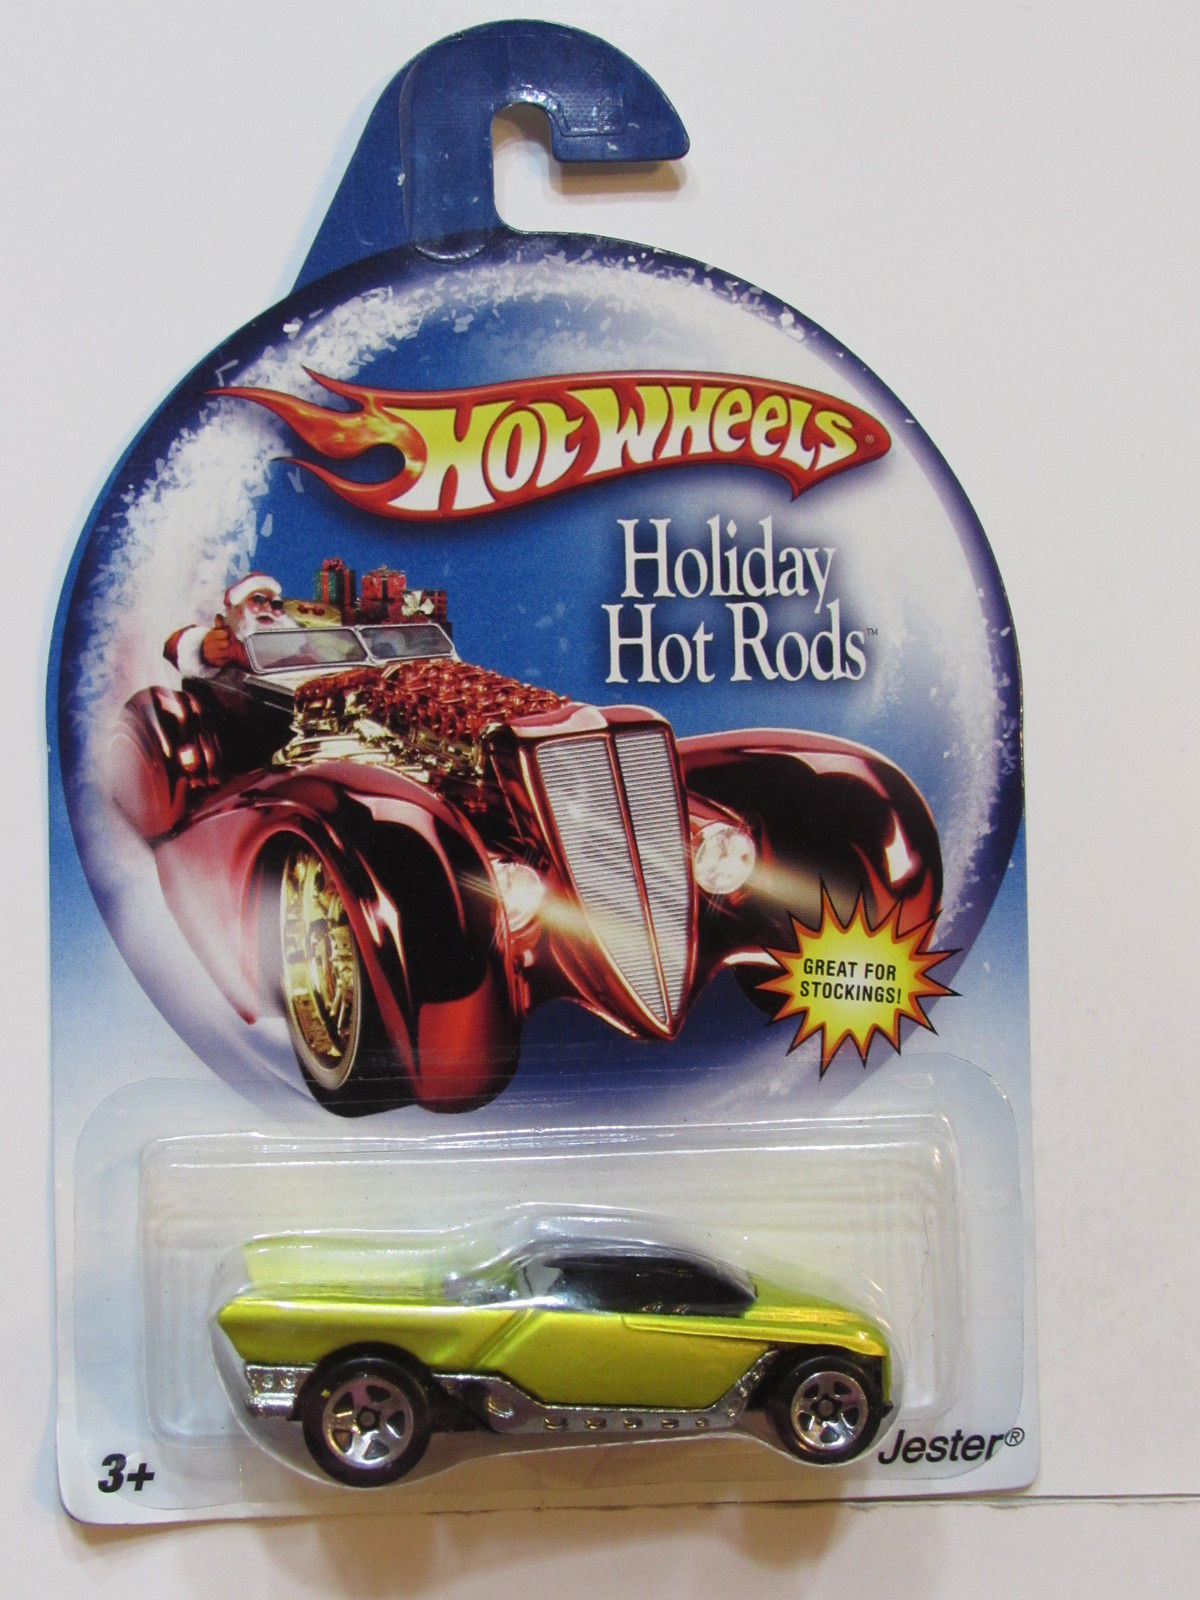 HOT WHEELS HOLIDAY HOT RODS 2007 JESTER